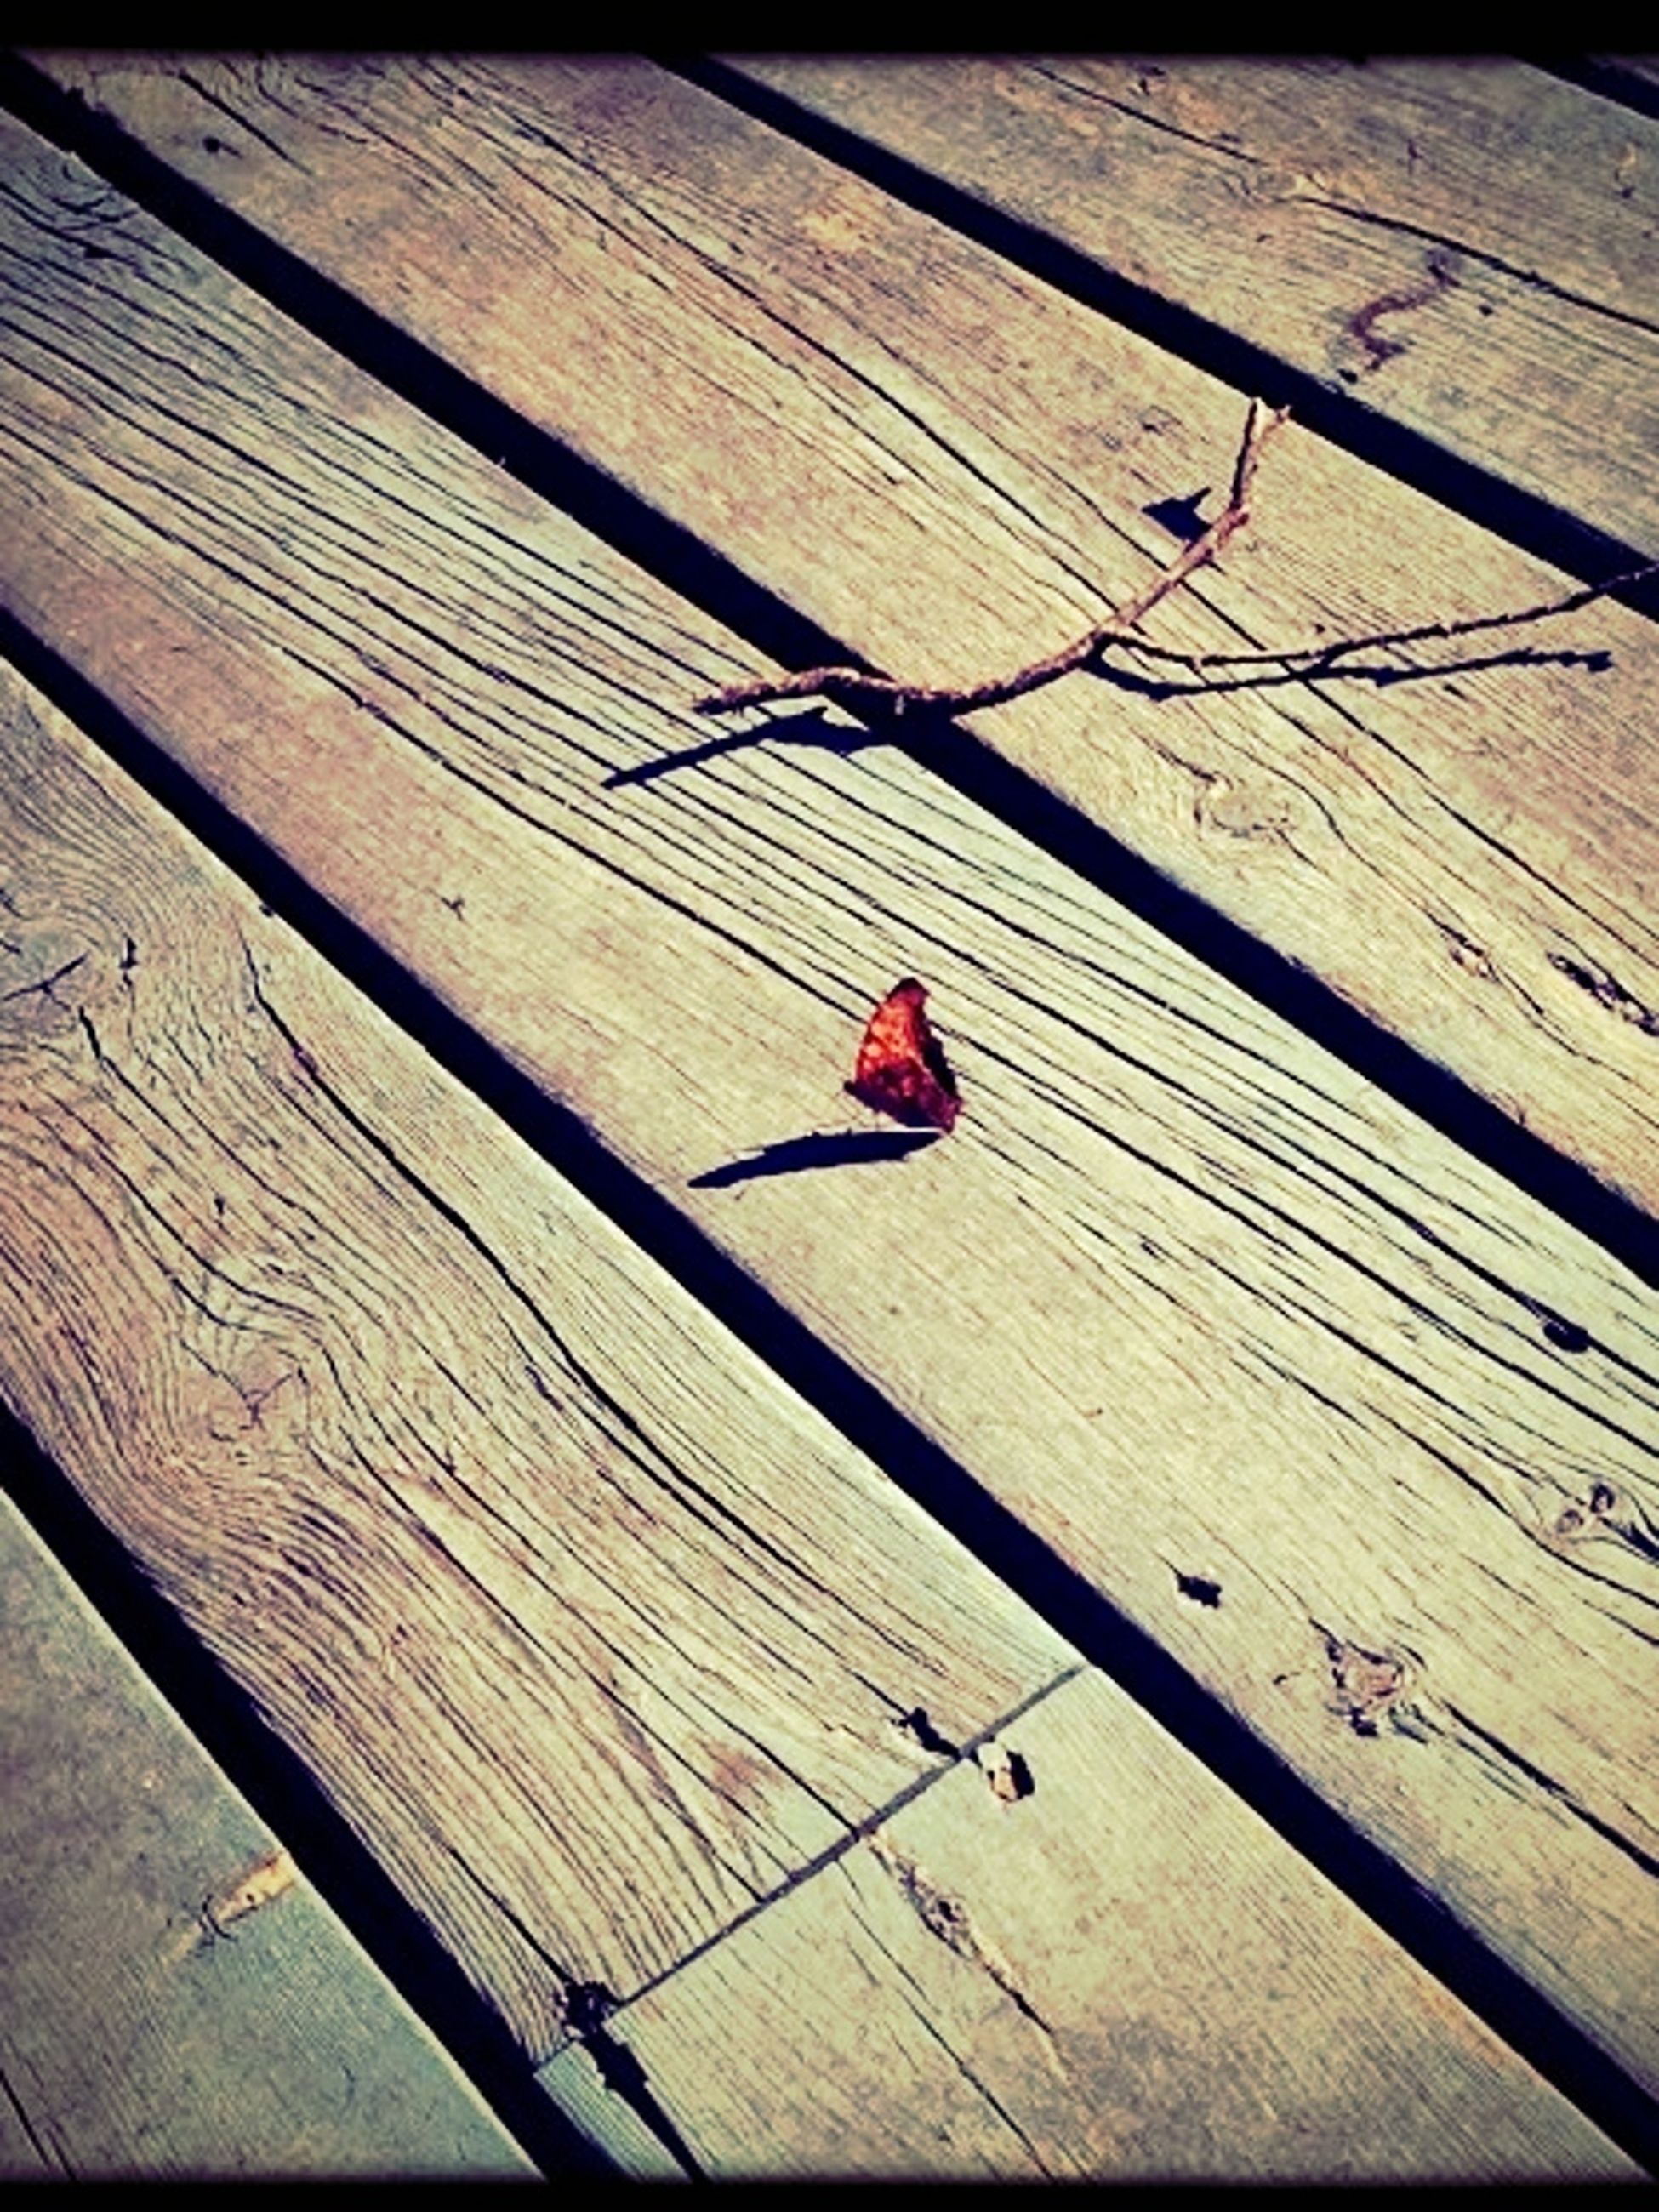 insect, wood - material, animal themes, wooden, high angle view, wildlife, animals in the wild, plank, one animal, red, day, no people, wood, outdoors, sunlight, close-up, shadow, nature, wall - building feature, pattern